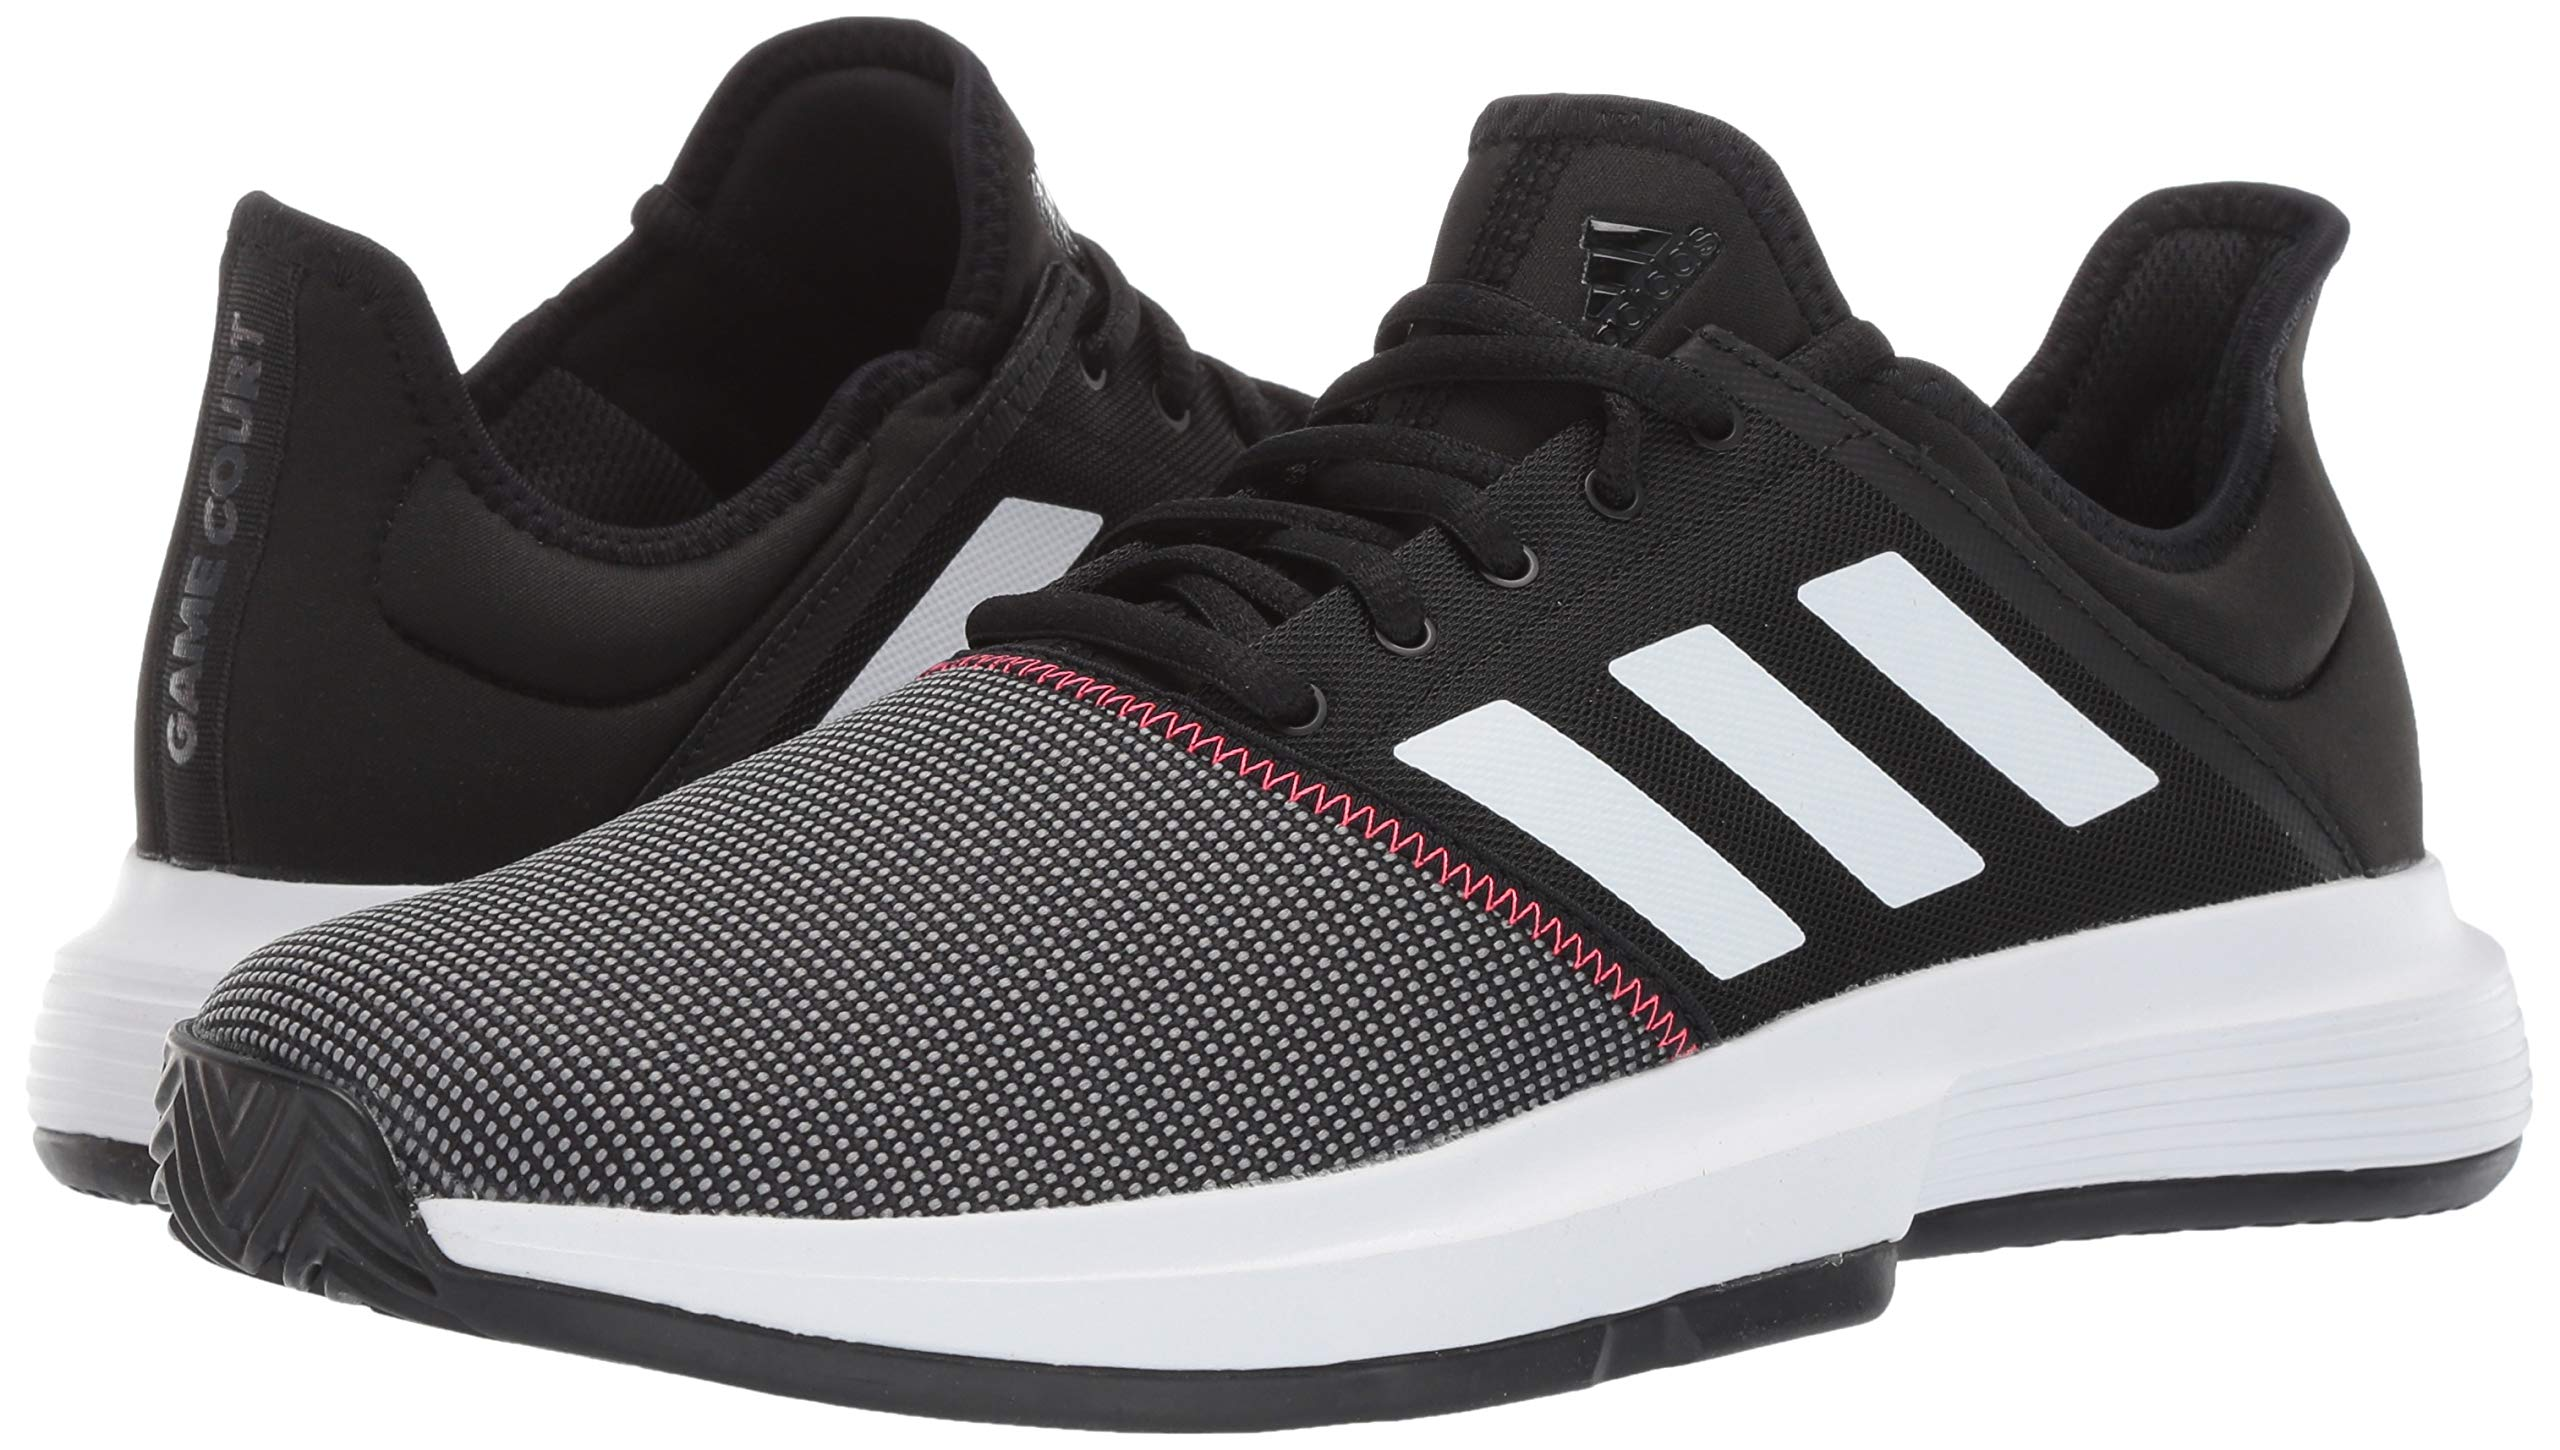 adidas Men's Gamecourt, Black/White/Shock red, 6.5 M US by adidas (Image #5)